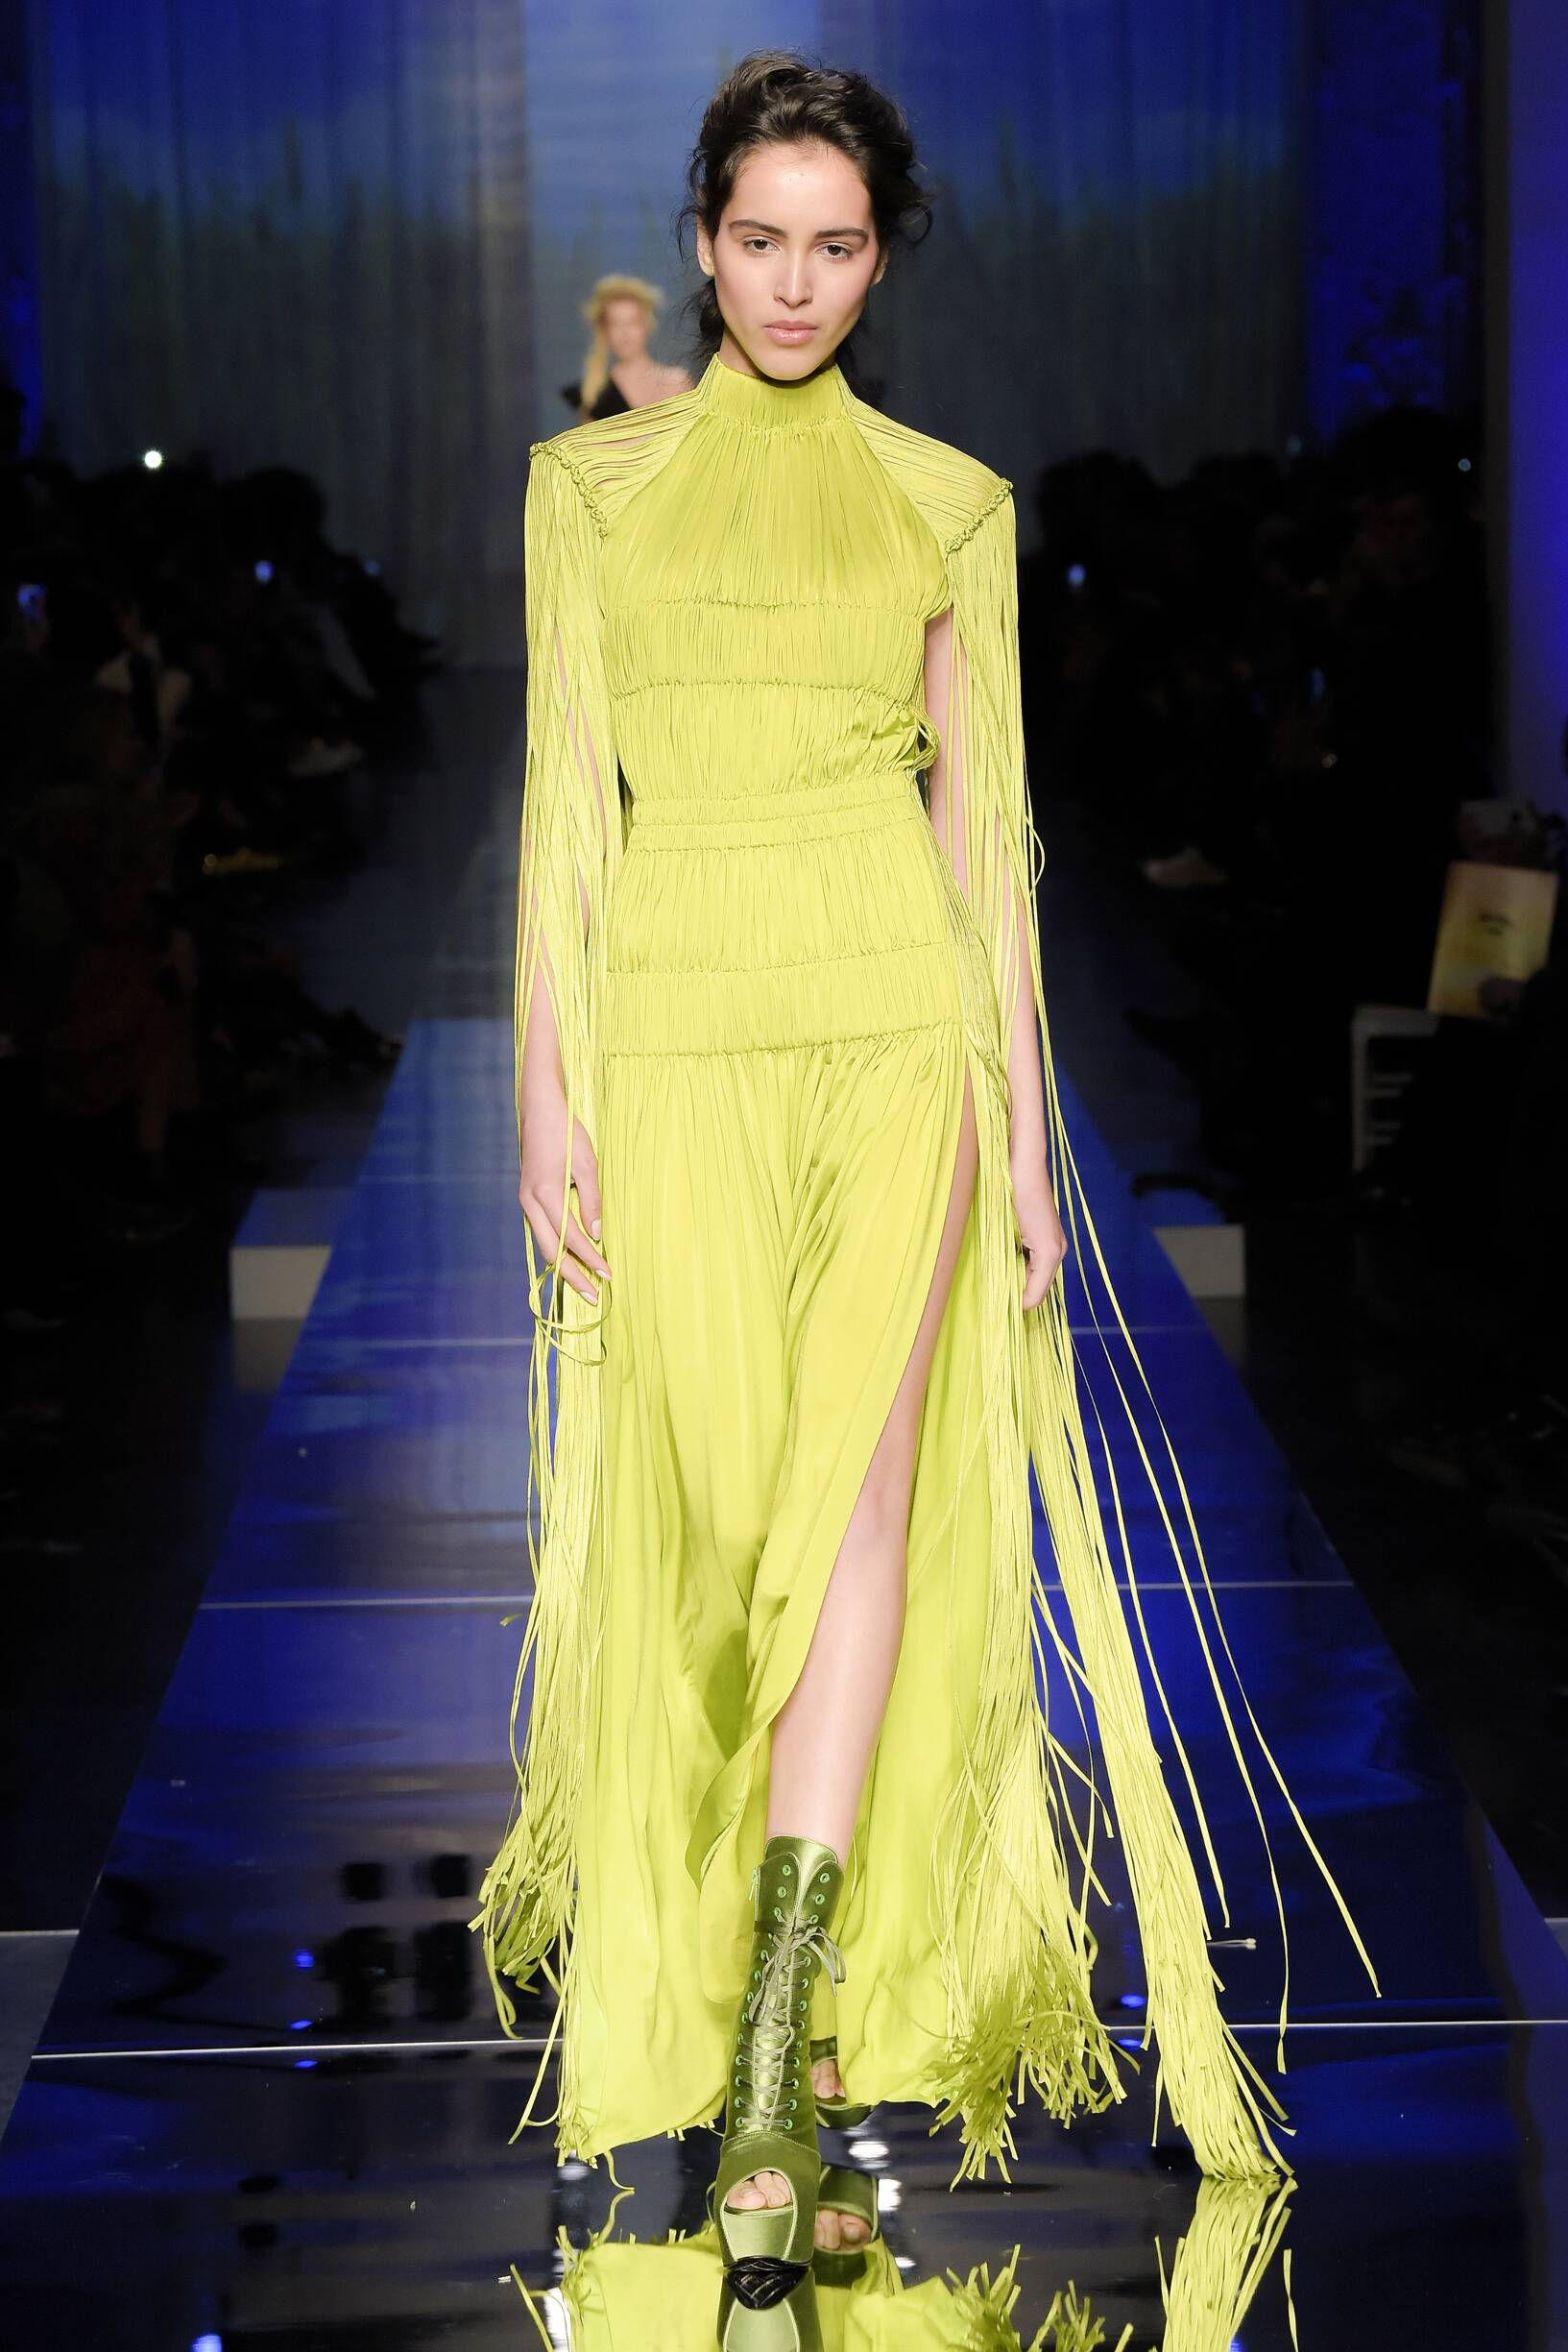 2017 Catwalk Jean Paul Gaultier Haute Couture Woman Fashion Show Summer